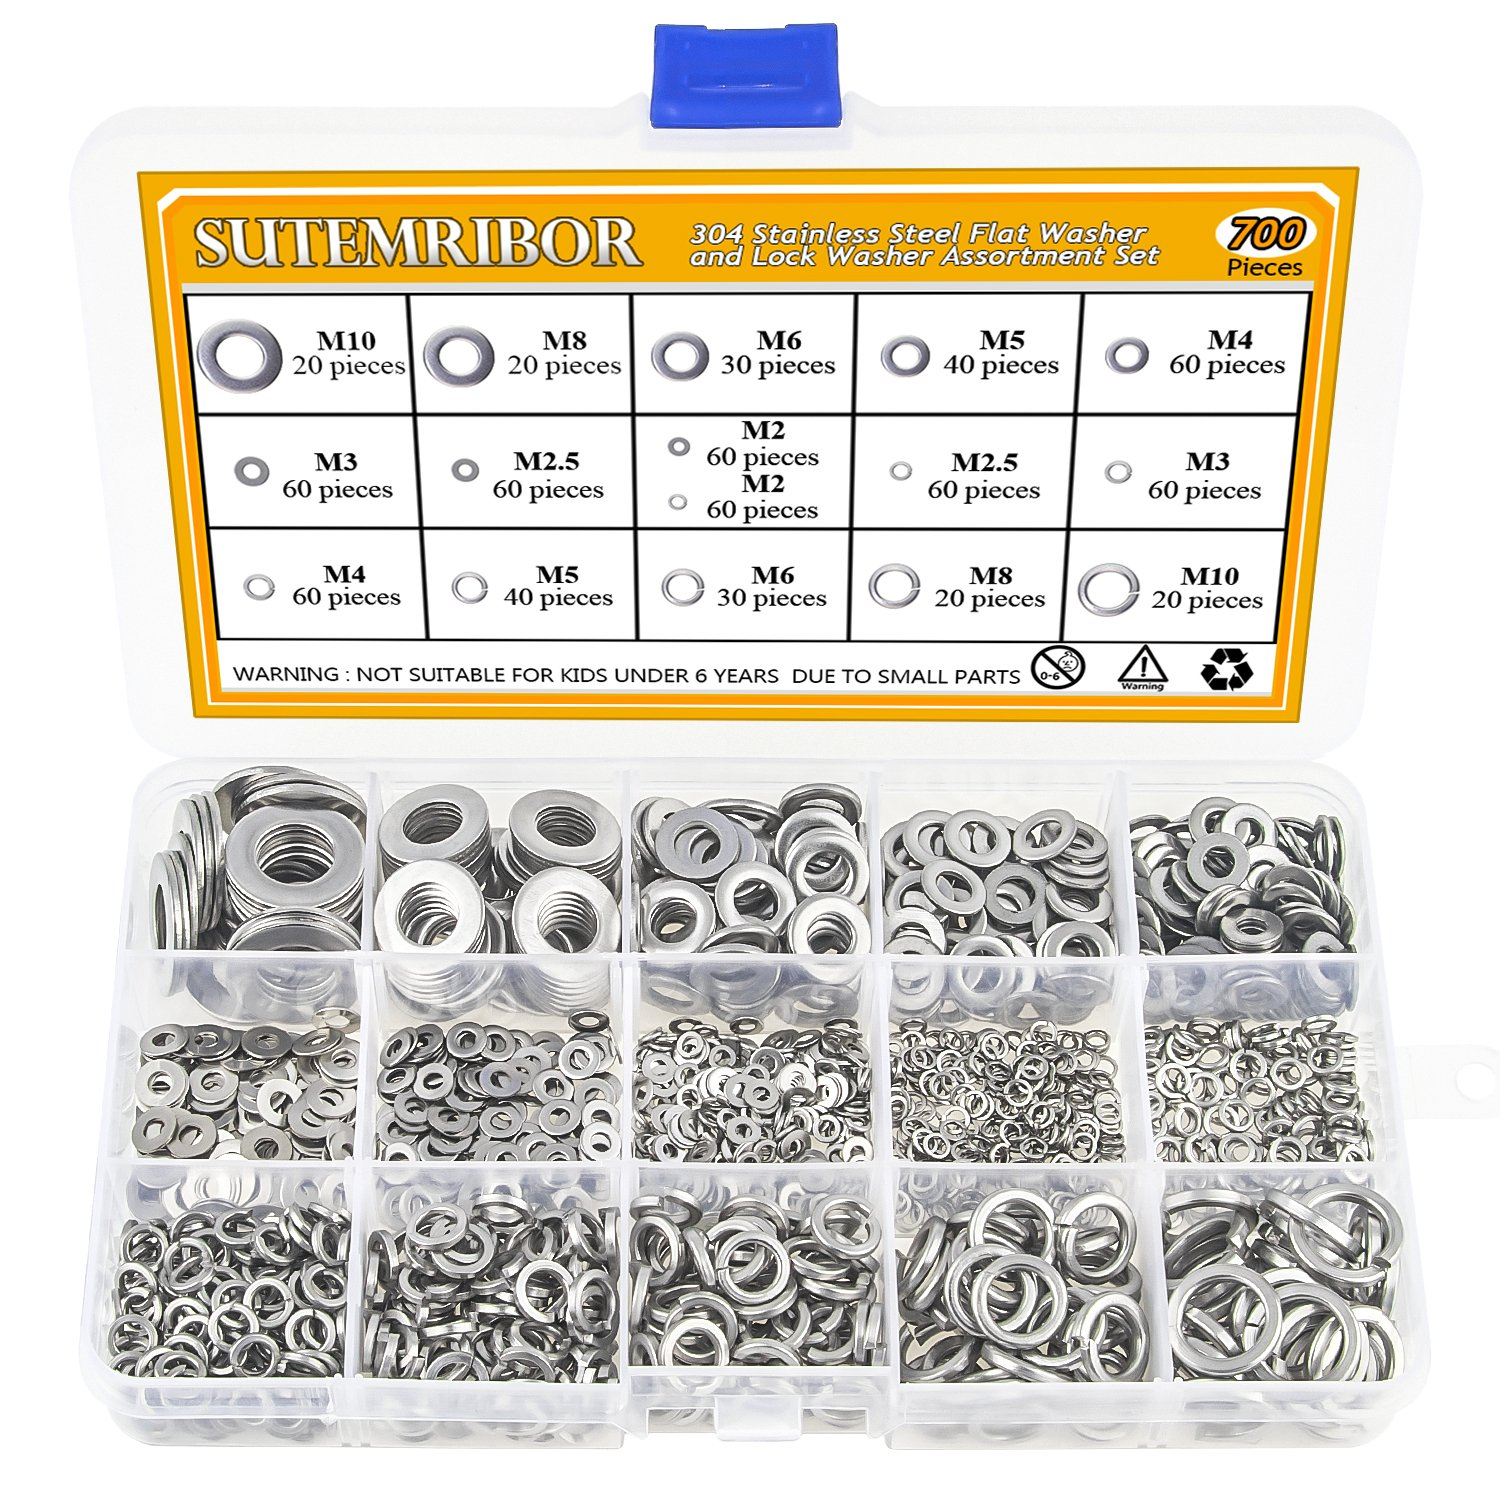 Sutemribor 304 Stainless Steel Flat Washer and Lock Washer Assortment Set 700 pcs, 8 Sizes - M2 M2.5 M3 M4 M5 M6 M8 M10